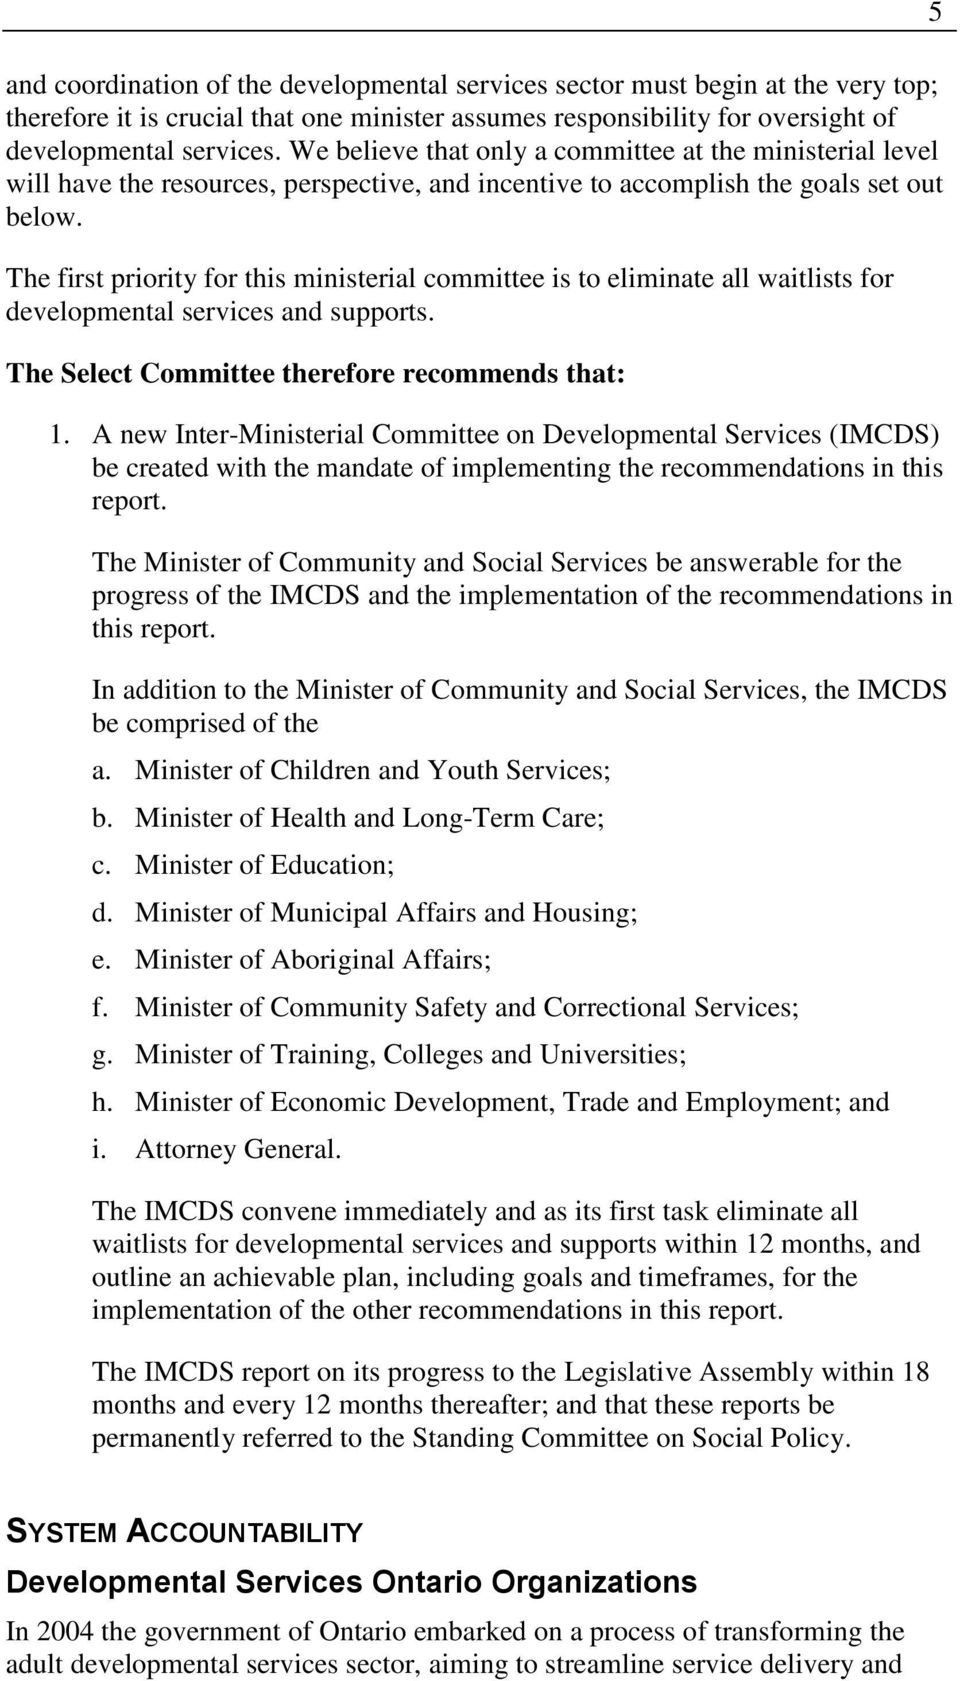 The first priority for this ministerial committee is to eliminate all waitlists for developmental services and supports. The Select Committee therefore recommends that: 1.